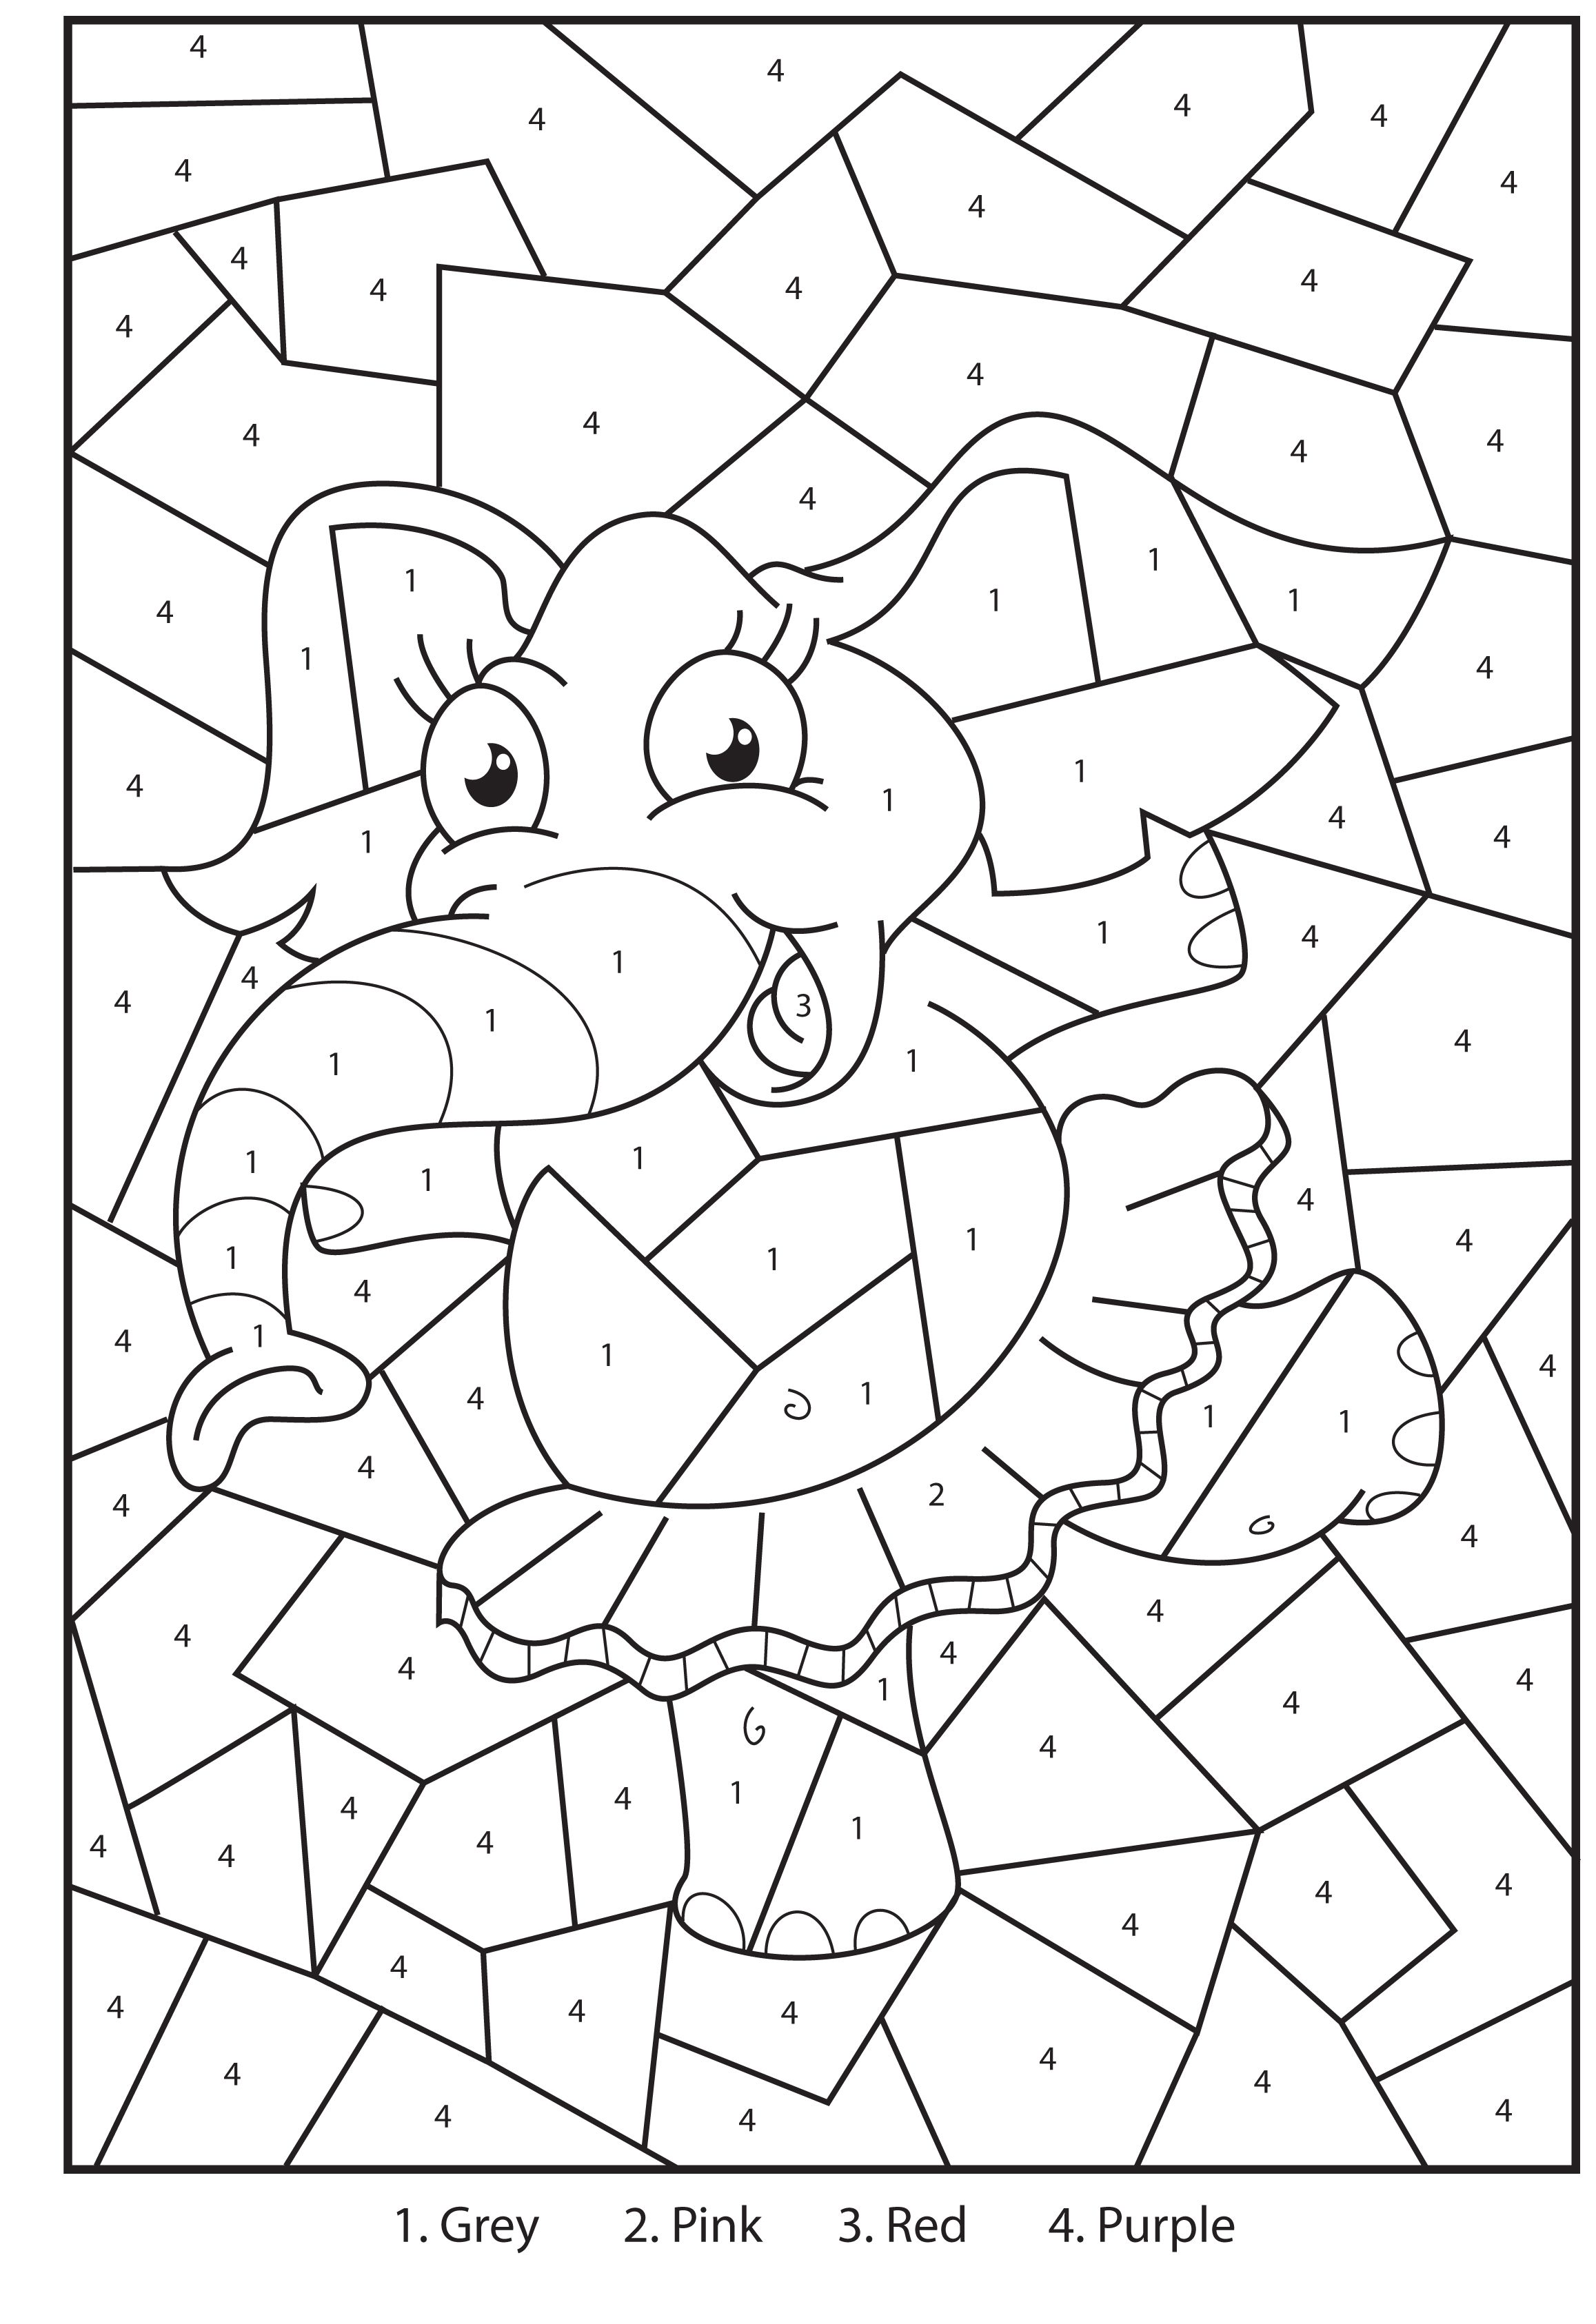 Free Printable Elephant Colour By Numbers Activity For